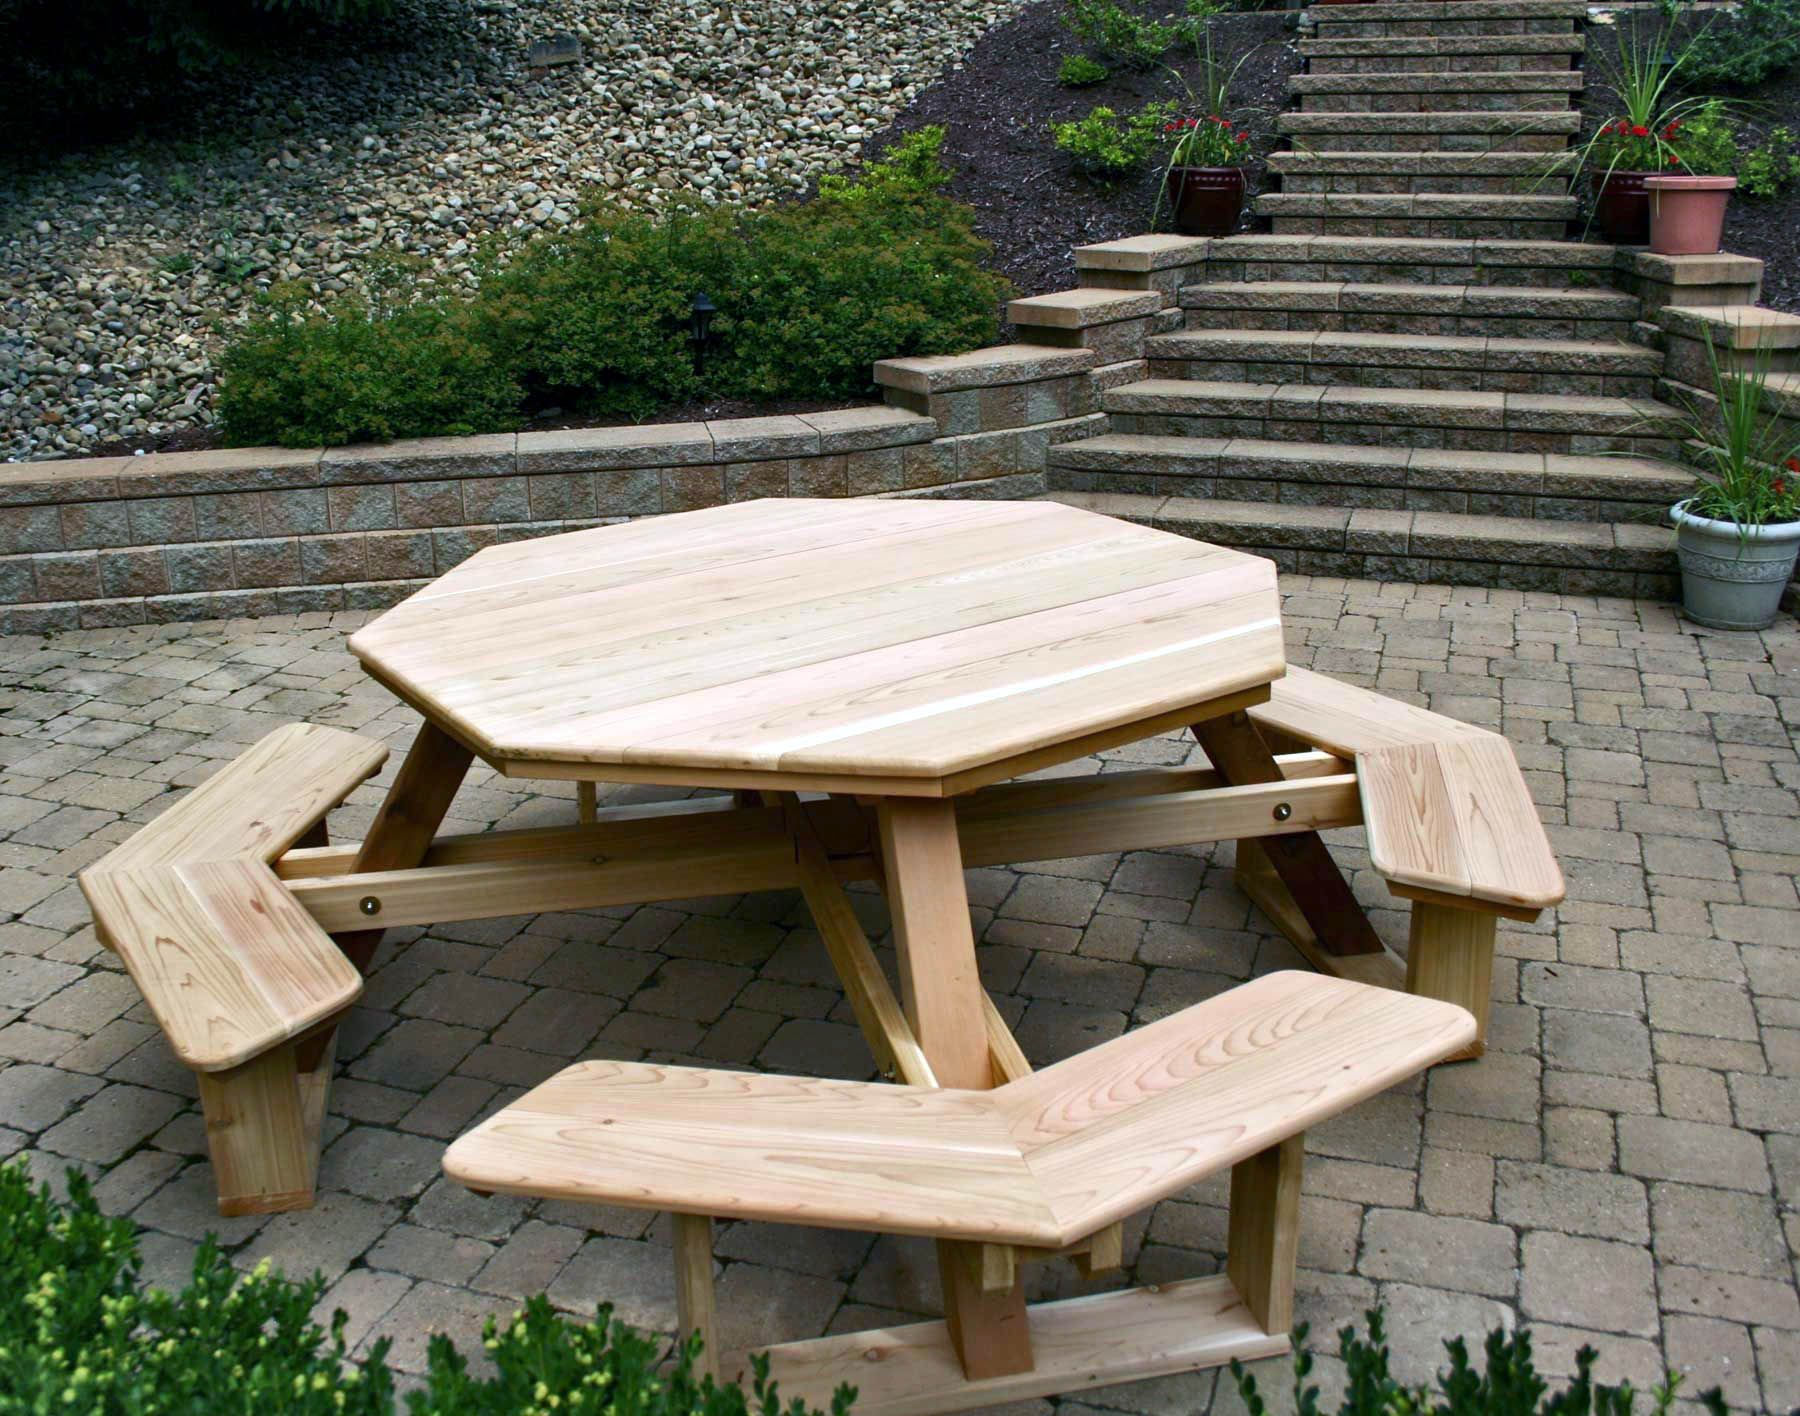 Groovy Beautiful Patio Tables Craigslist To Inspire You Patio Alphanode Cool Chair Designs And Ideas Alphanodeonline